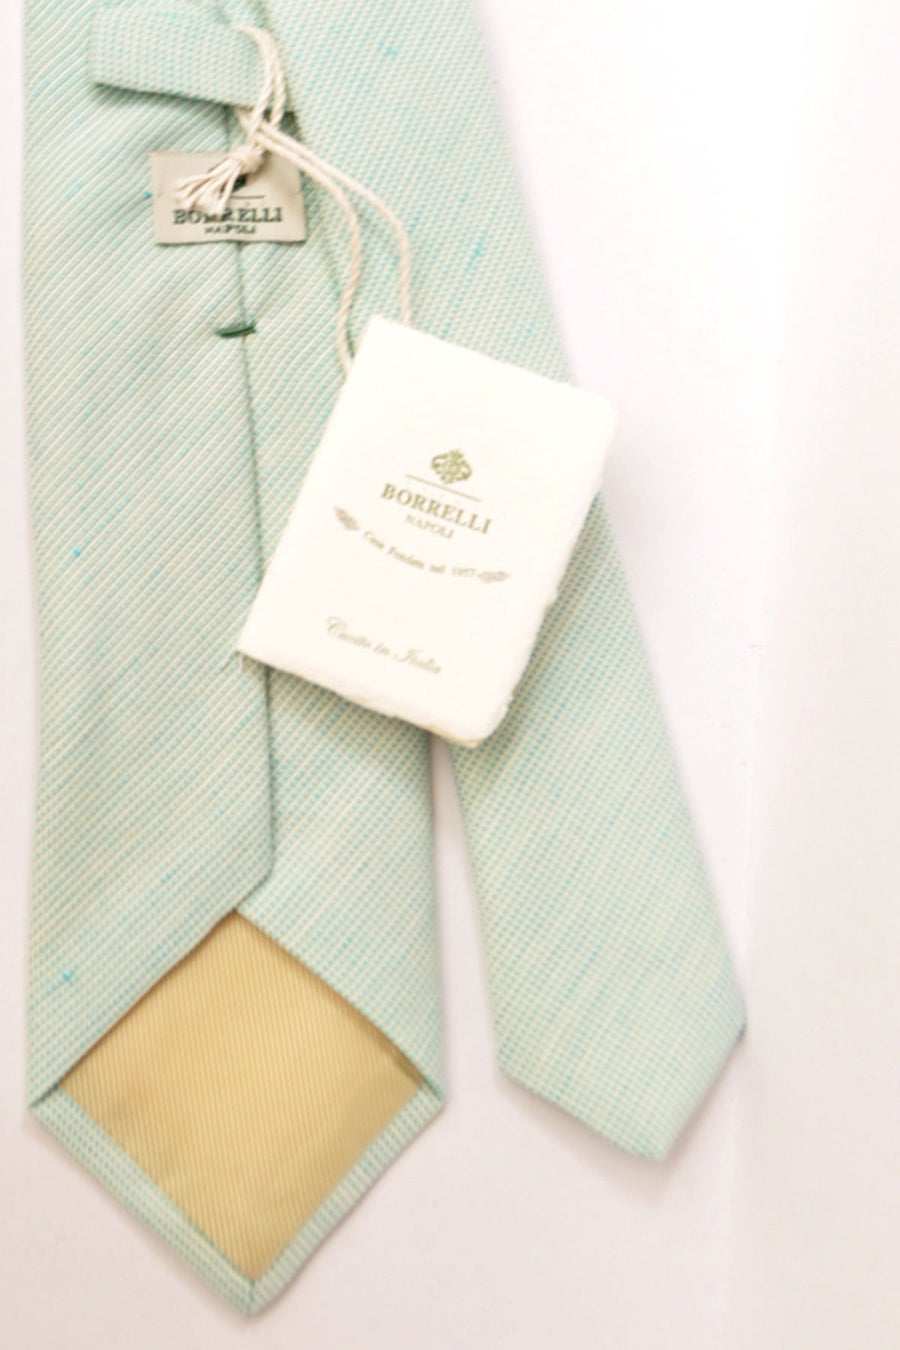 Borrelli Sevenfold Tie ROYAL COLLECTION Aqua Silver